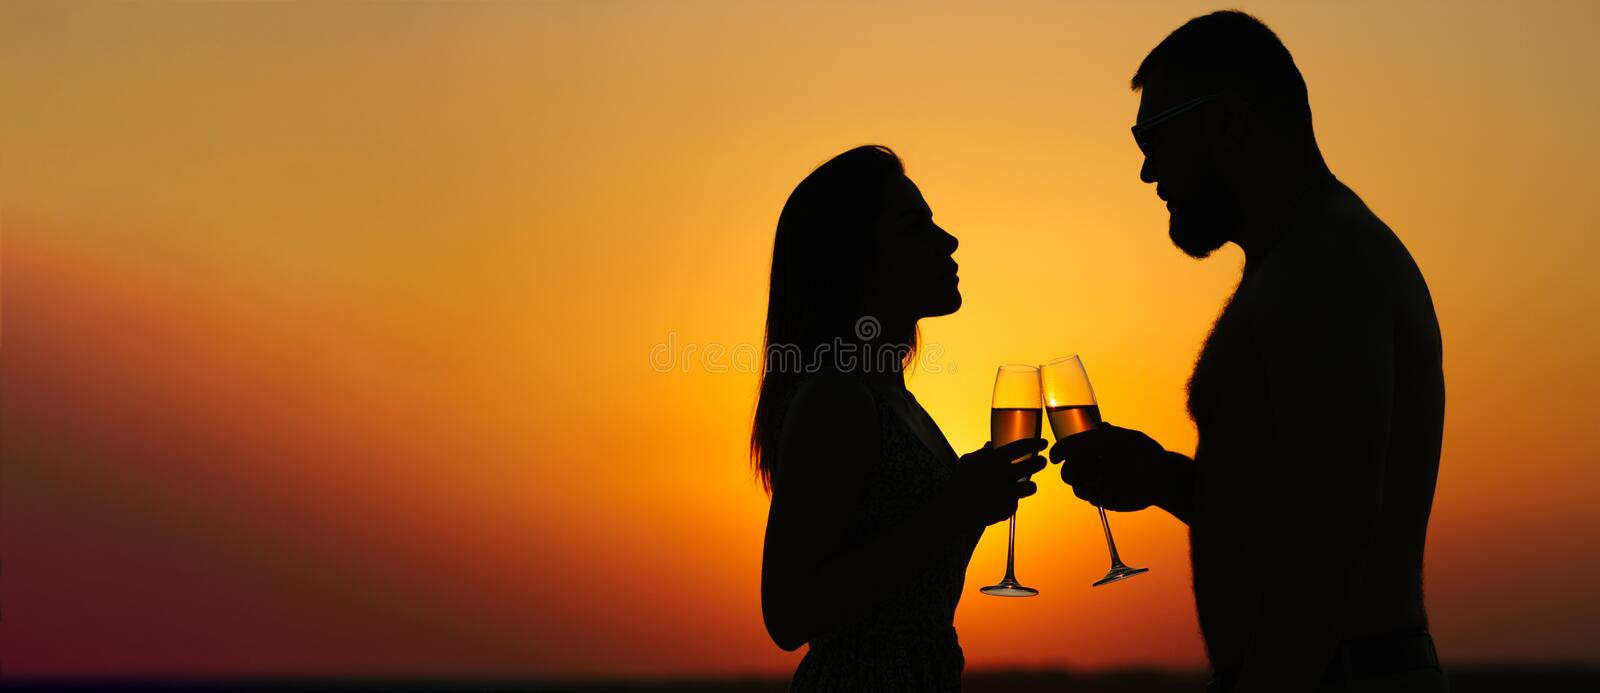 Silhouettes of man and woman at sunset dramatic sky background, couple toasting wine glasses in romantic date setting, looking eac. Silhouettes of men and women royalty free stock image